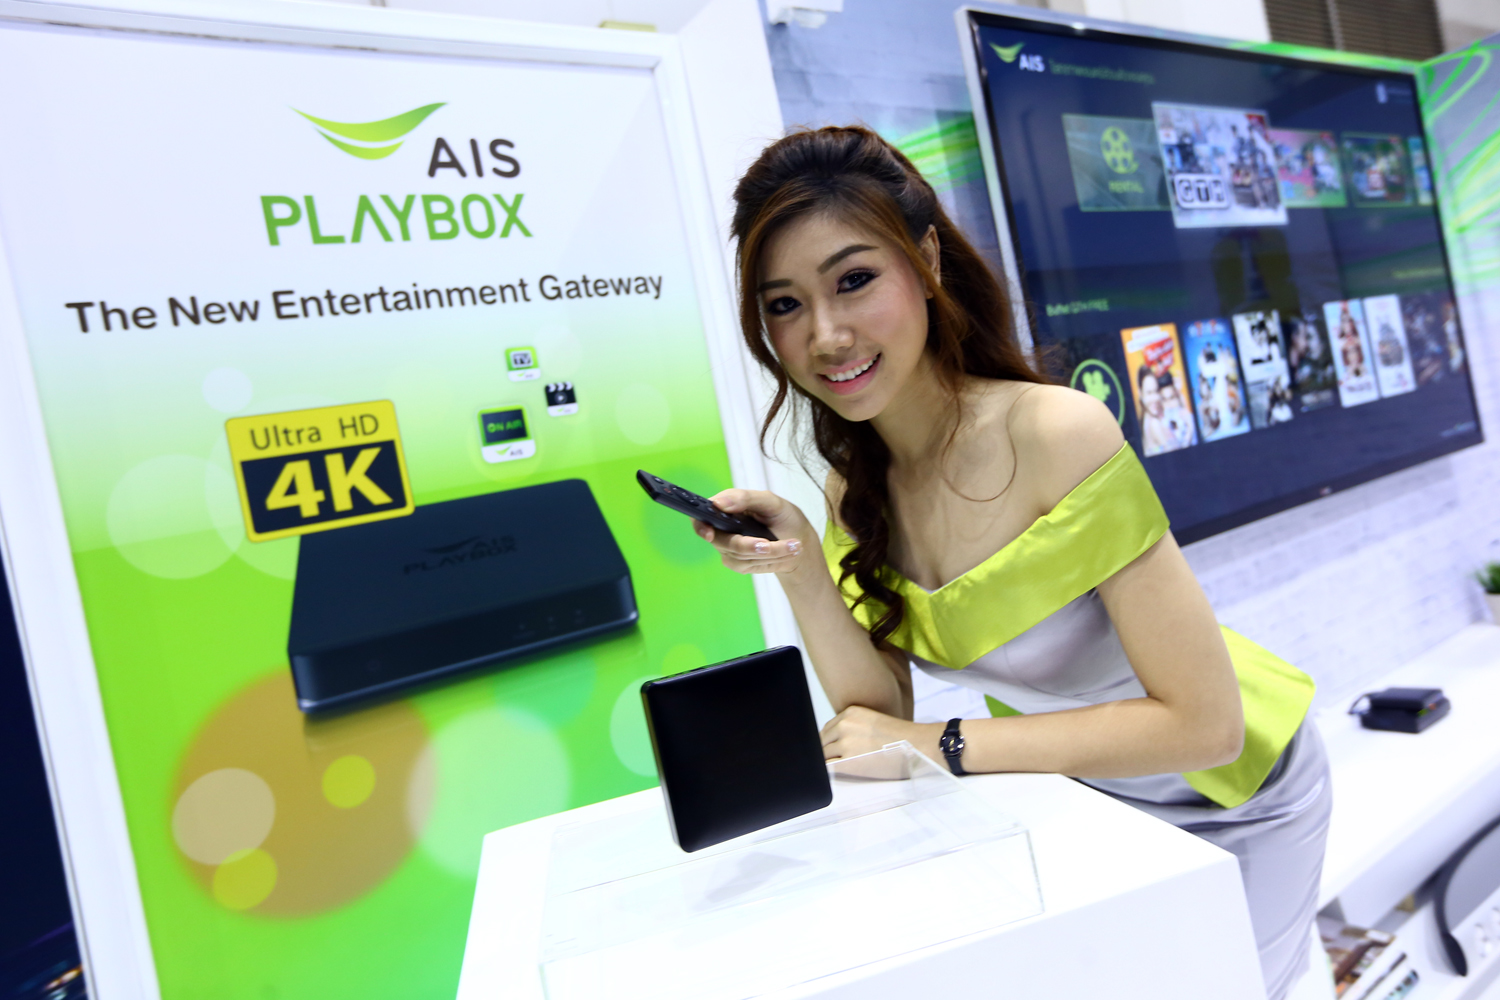 ais-play-box